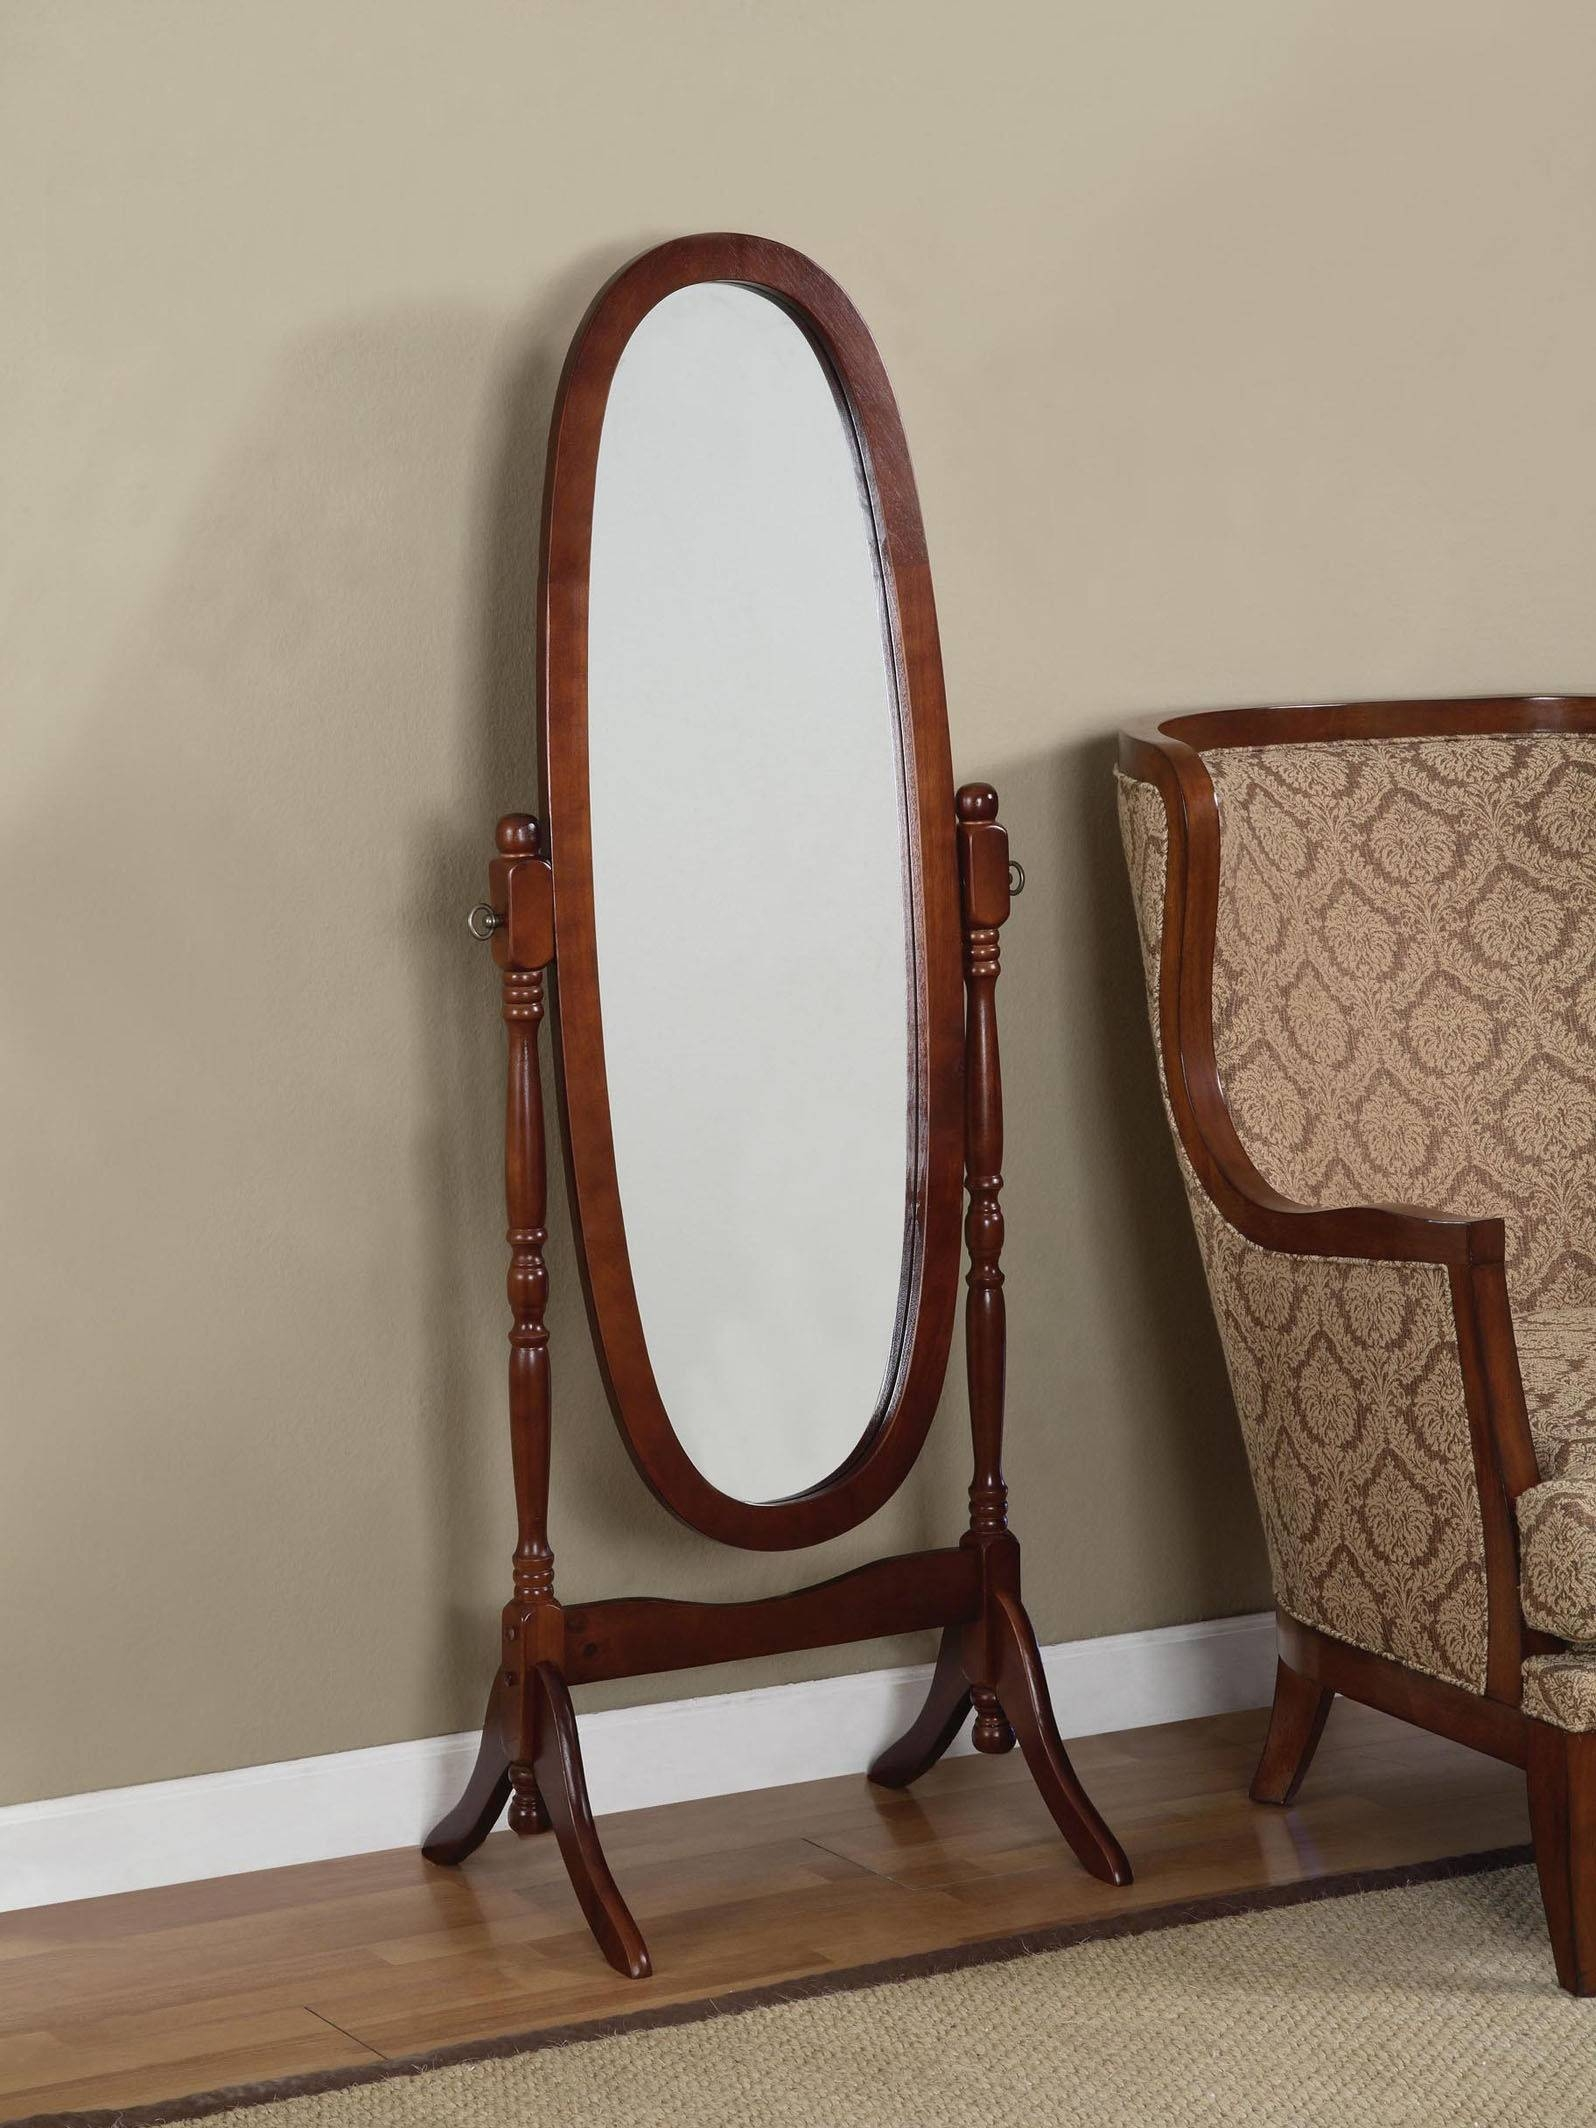 Bedroom Furniture : Unique Mirrors Full Length Mirror Small in Small Free Standing Mirrors (Image 7 of 25)